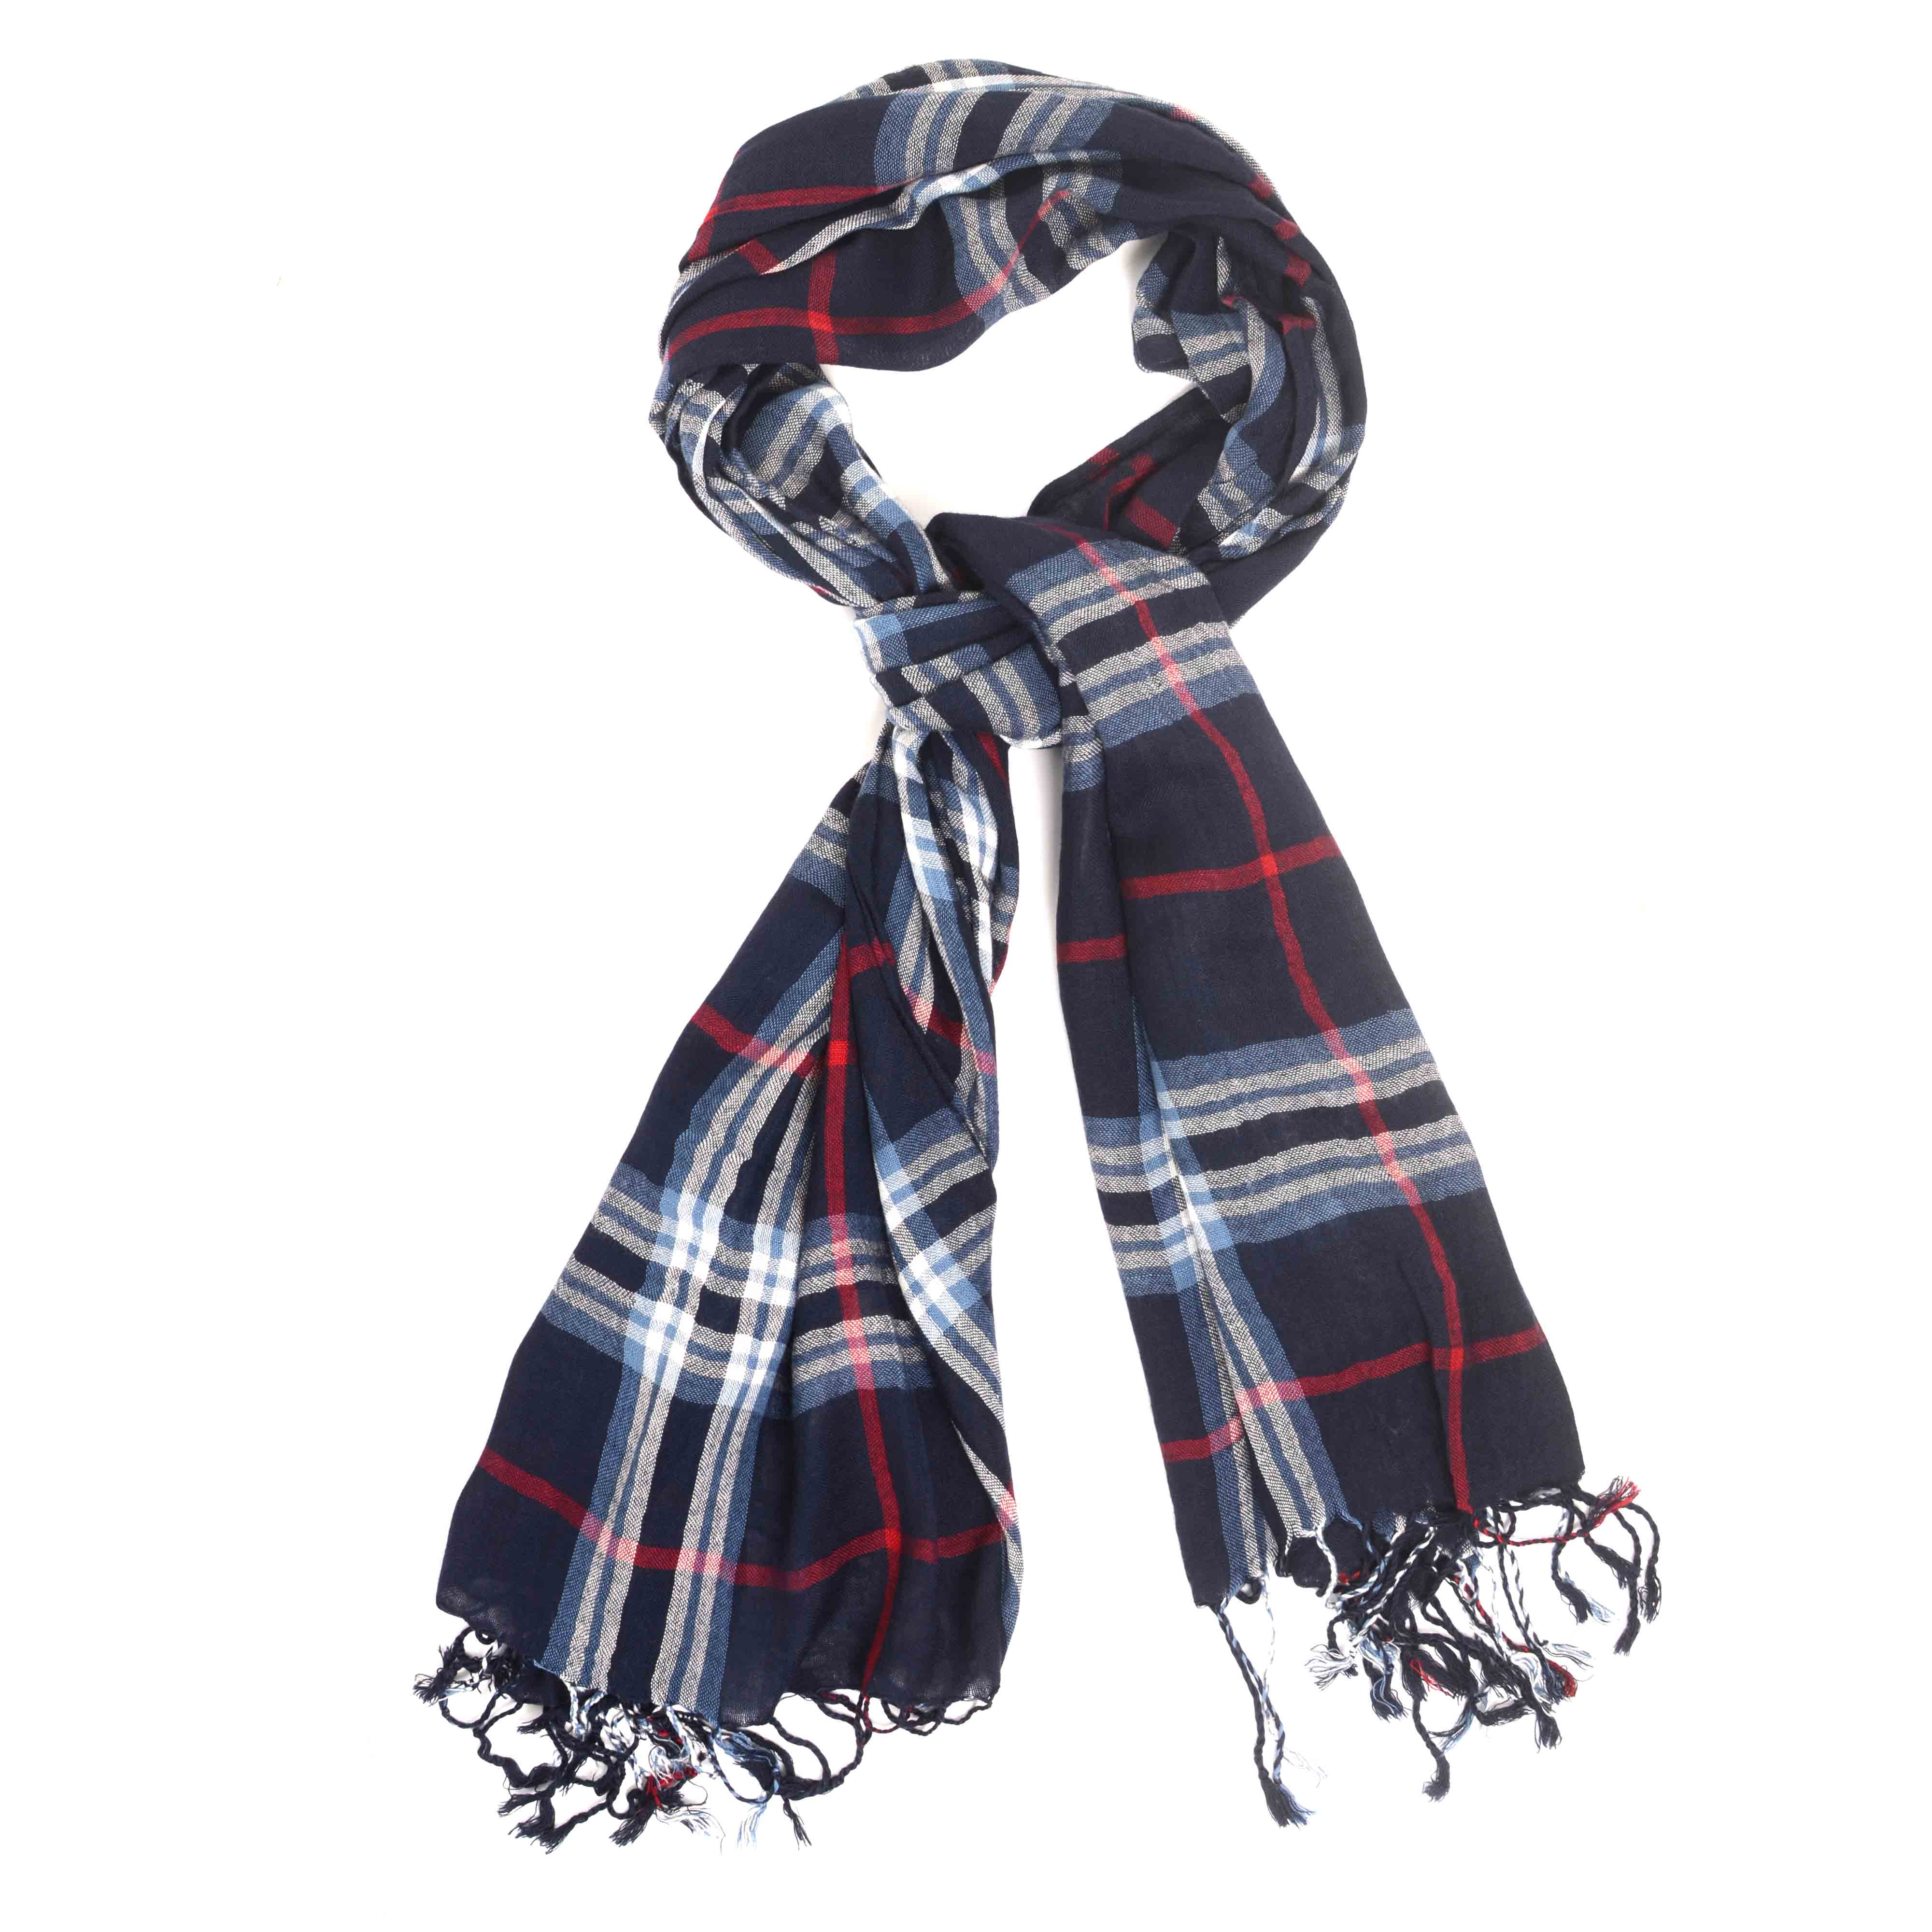 Mathieu   Scarf in navy with light blue accents in the check pattern